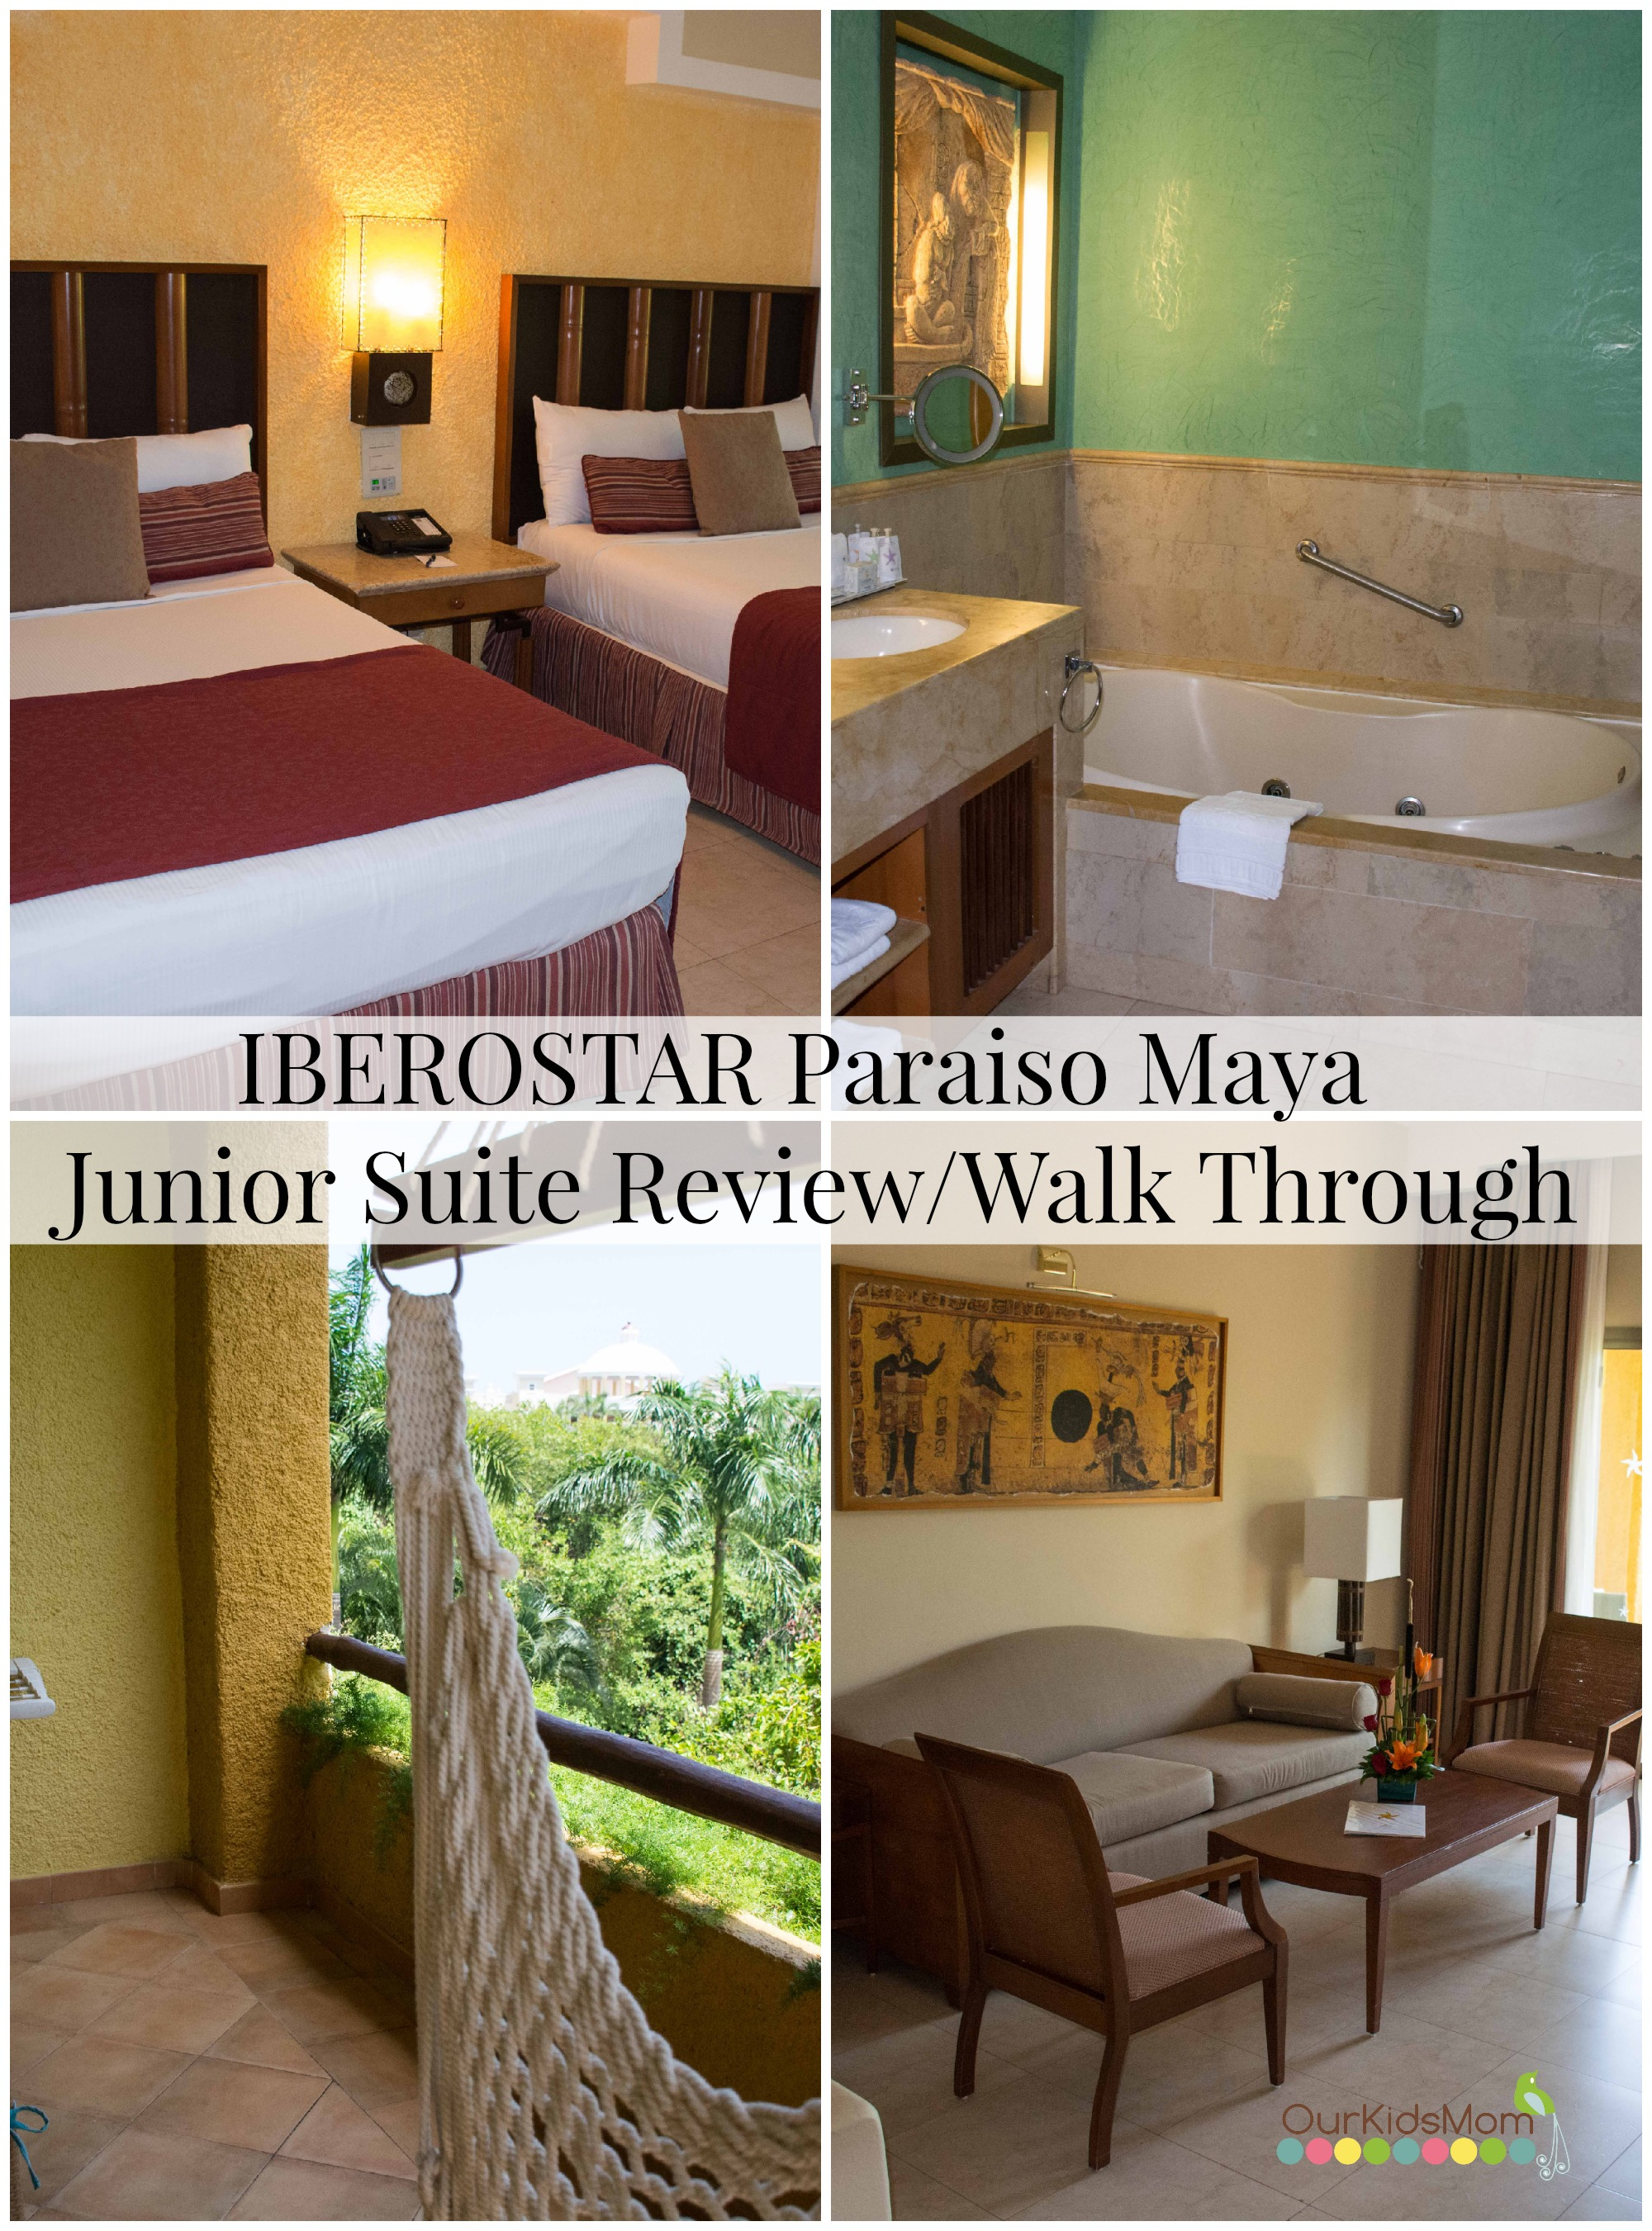 IBEROSTAR Paraiso Maya in Riviera Maya Mexico Review & Walk Through Video